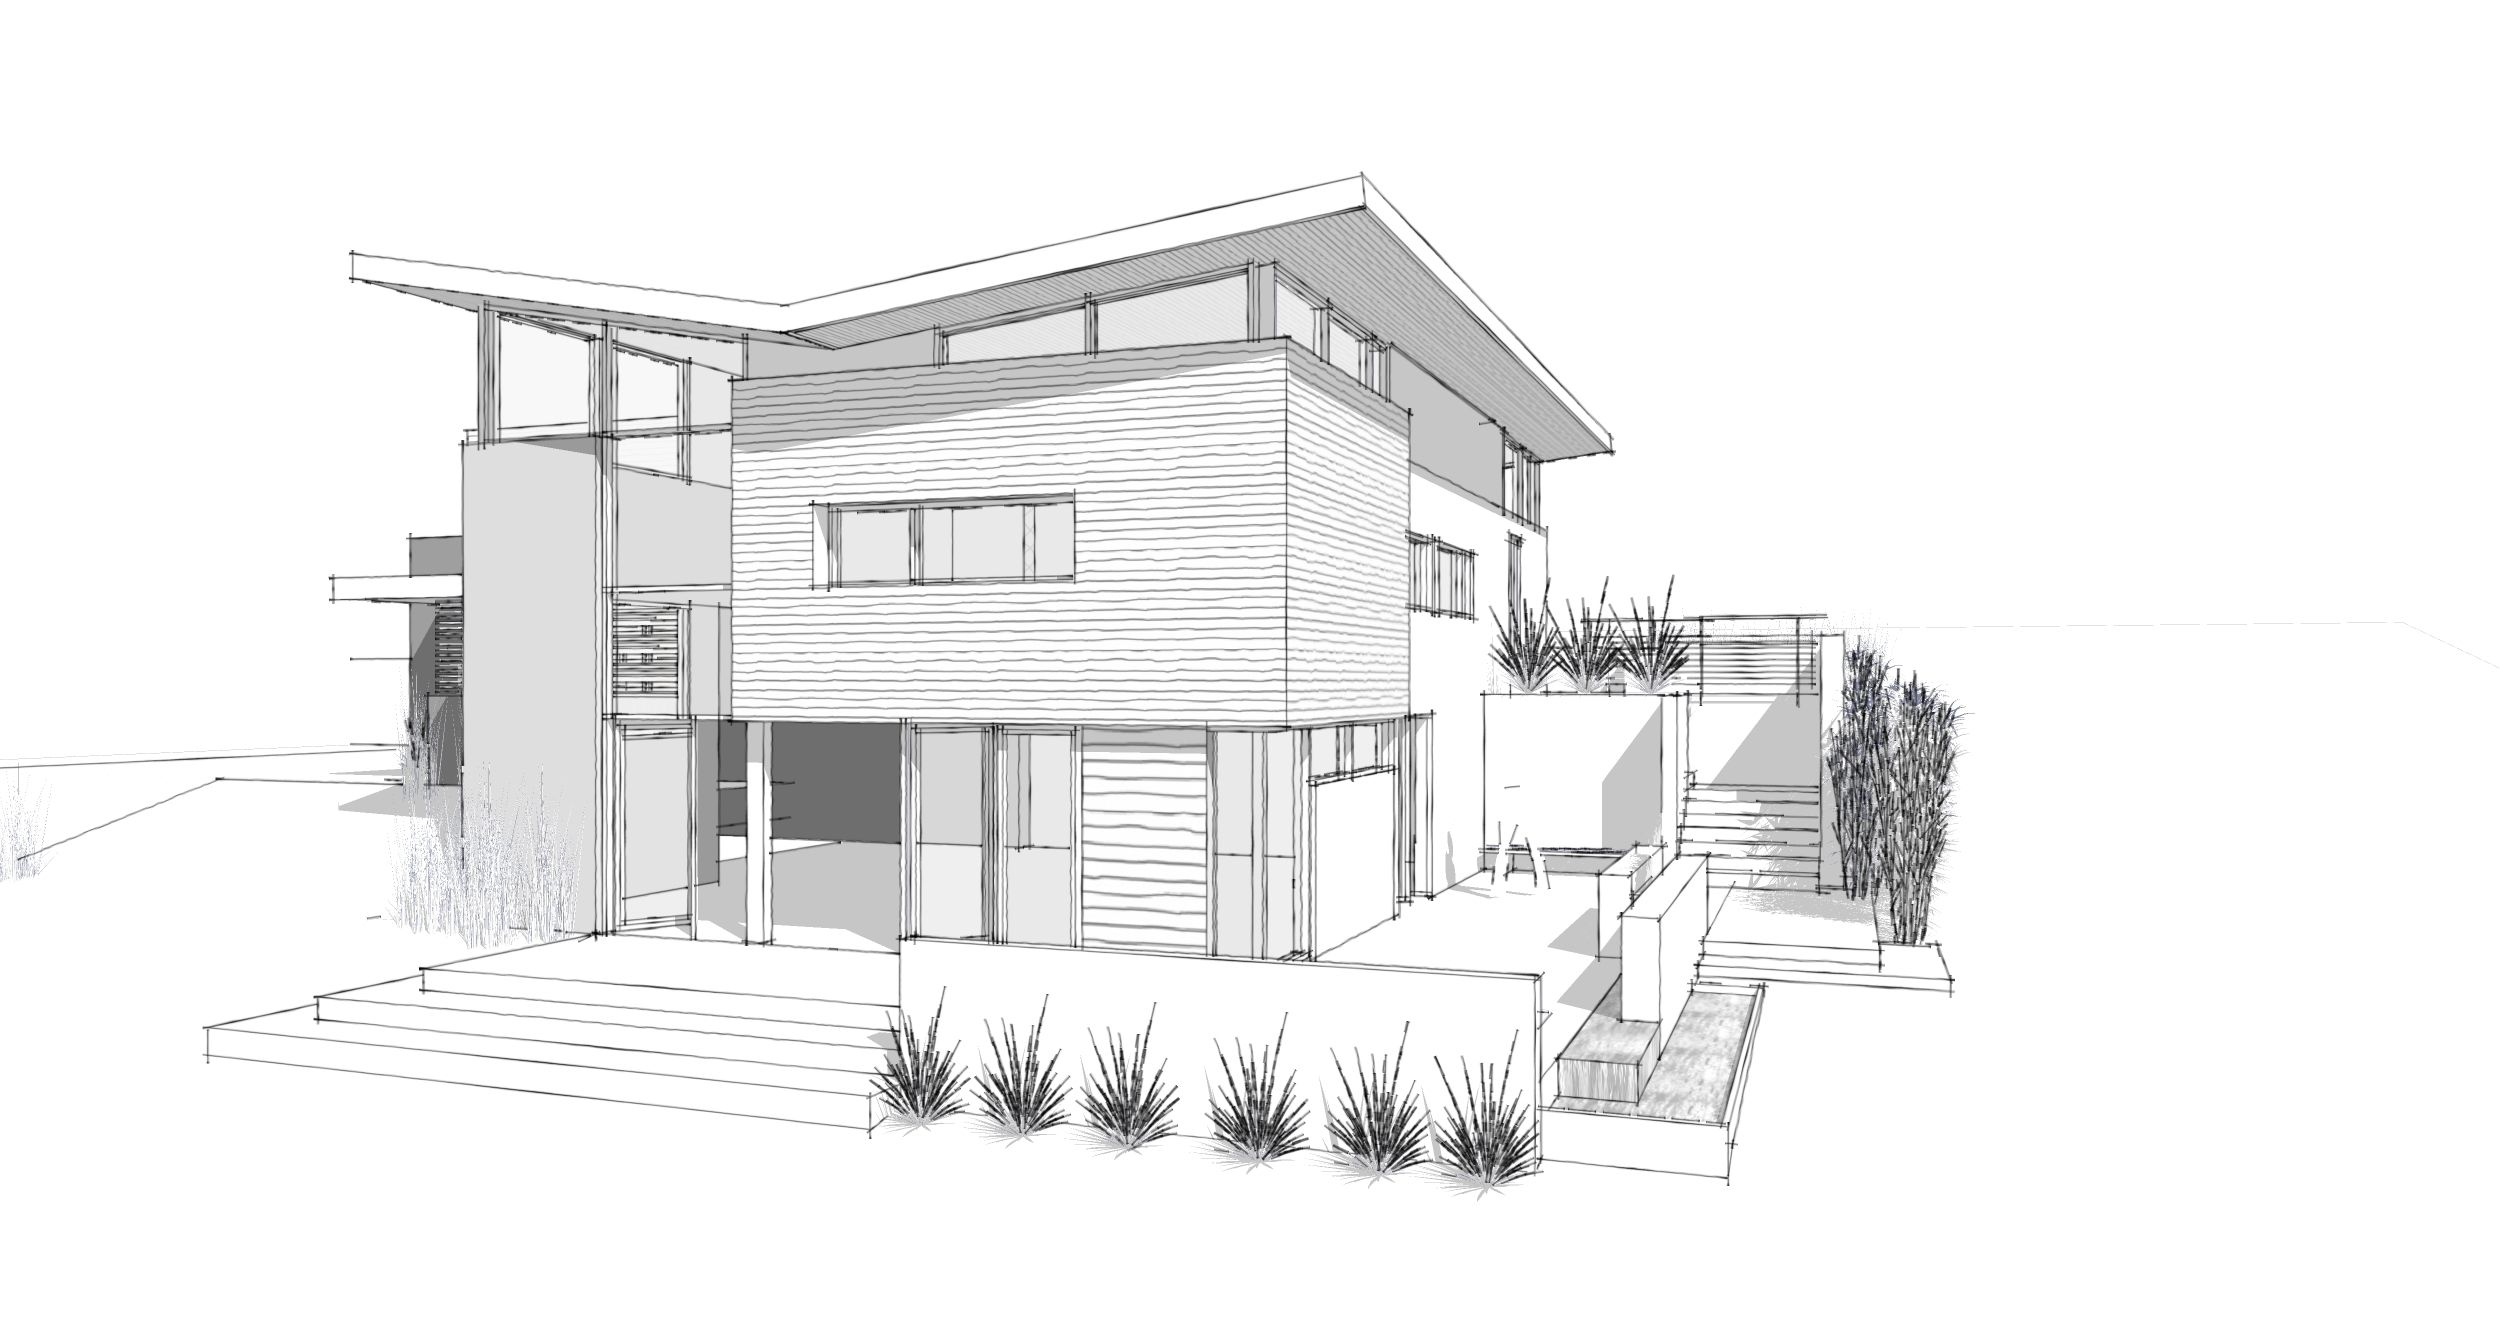 Modern home architecture sketches design ideas 13435 for Architectural drawings of houses